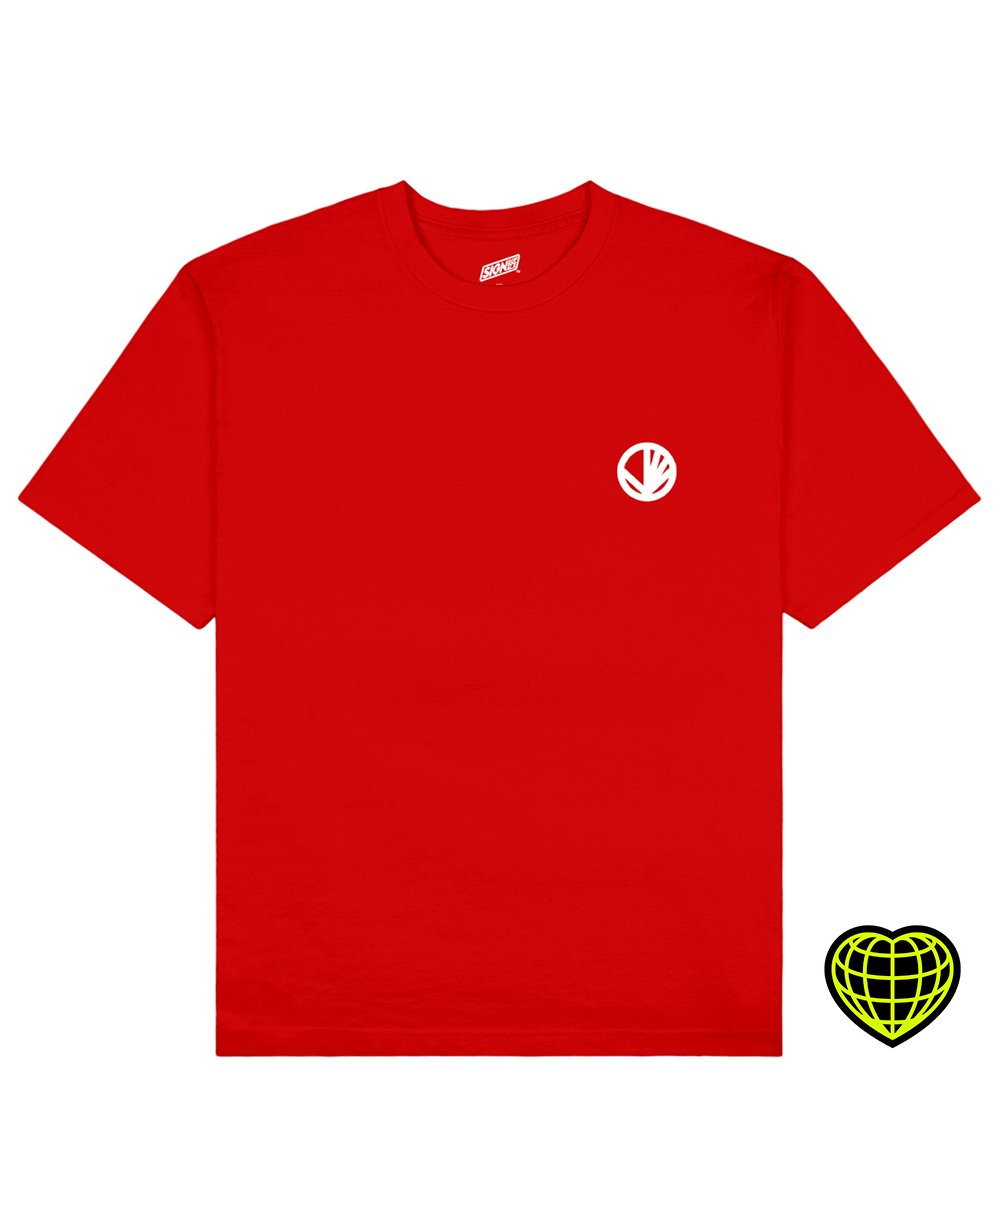 Circle with beams Print T-shirt in Red - T-Shirts - Signs of Signals - BRANMA